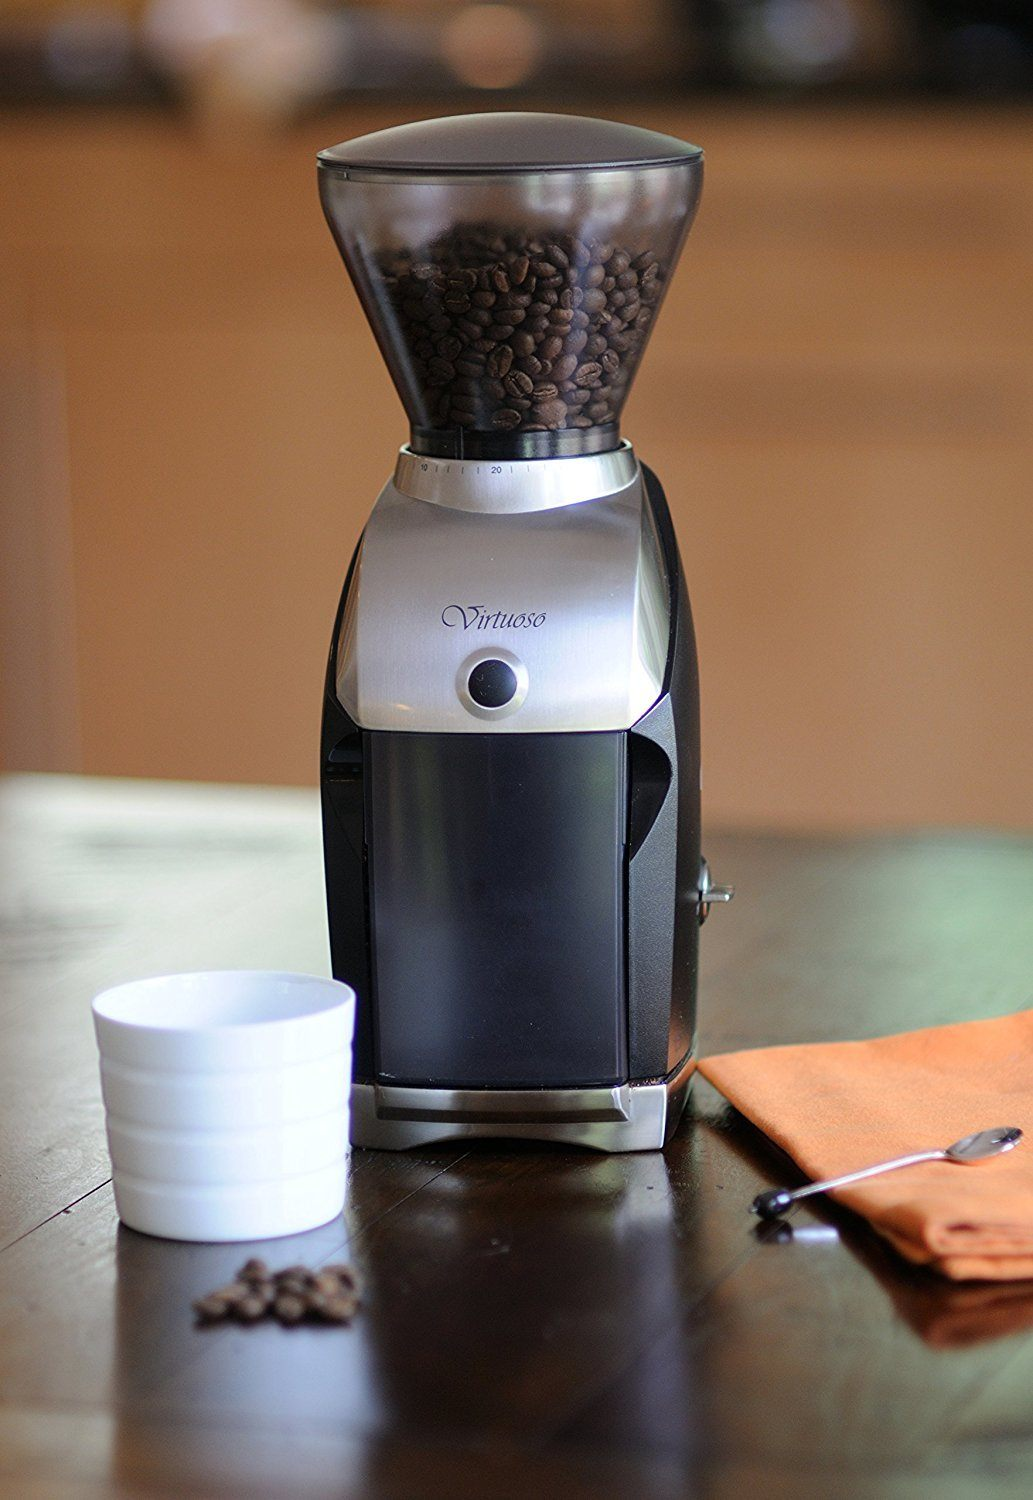 Baratza Virtuoso - Conical Burr Coffee Grinder 05